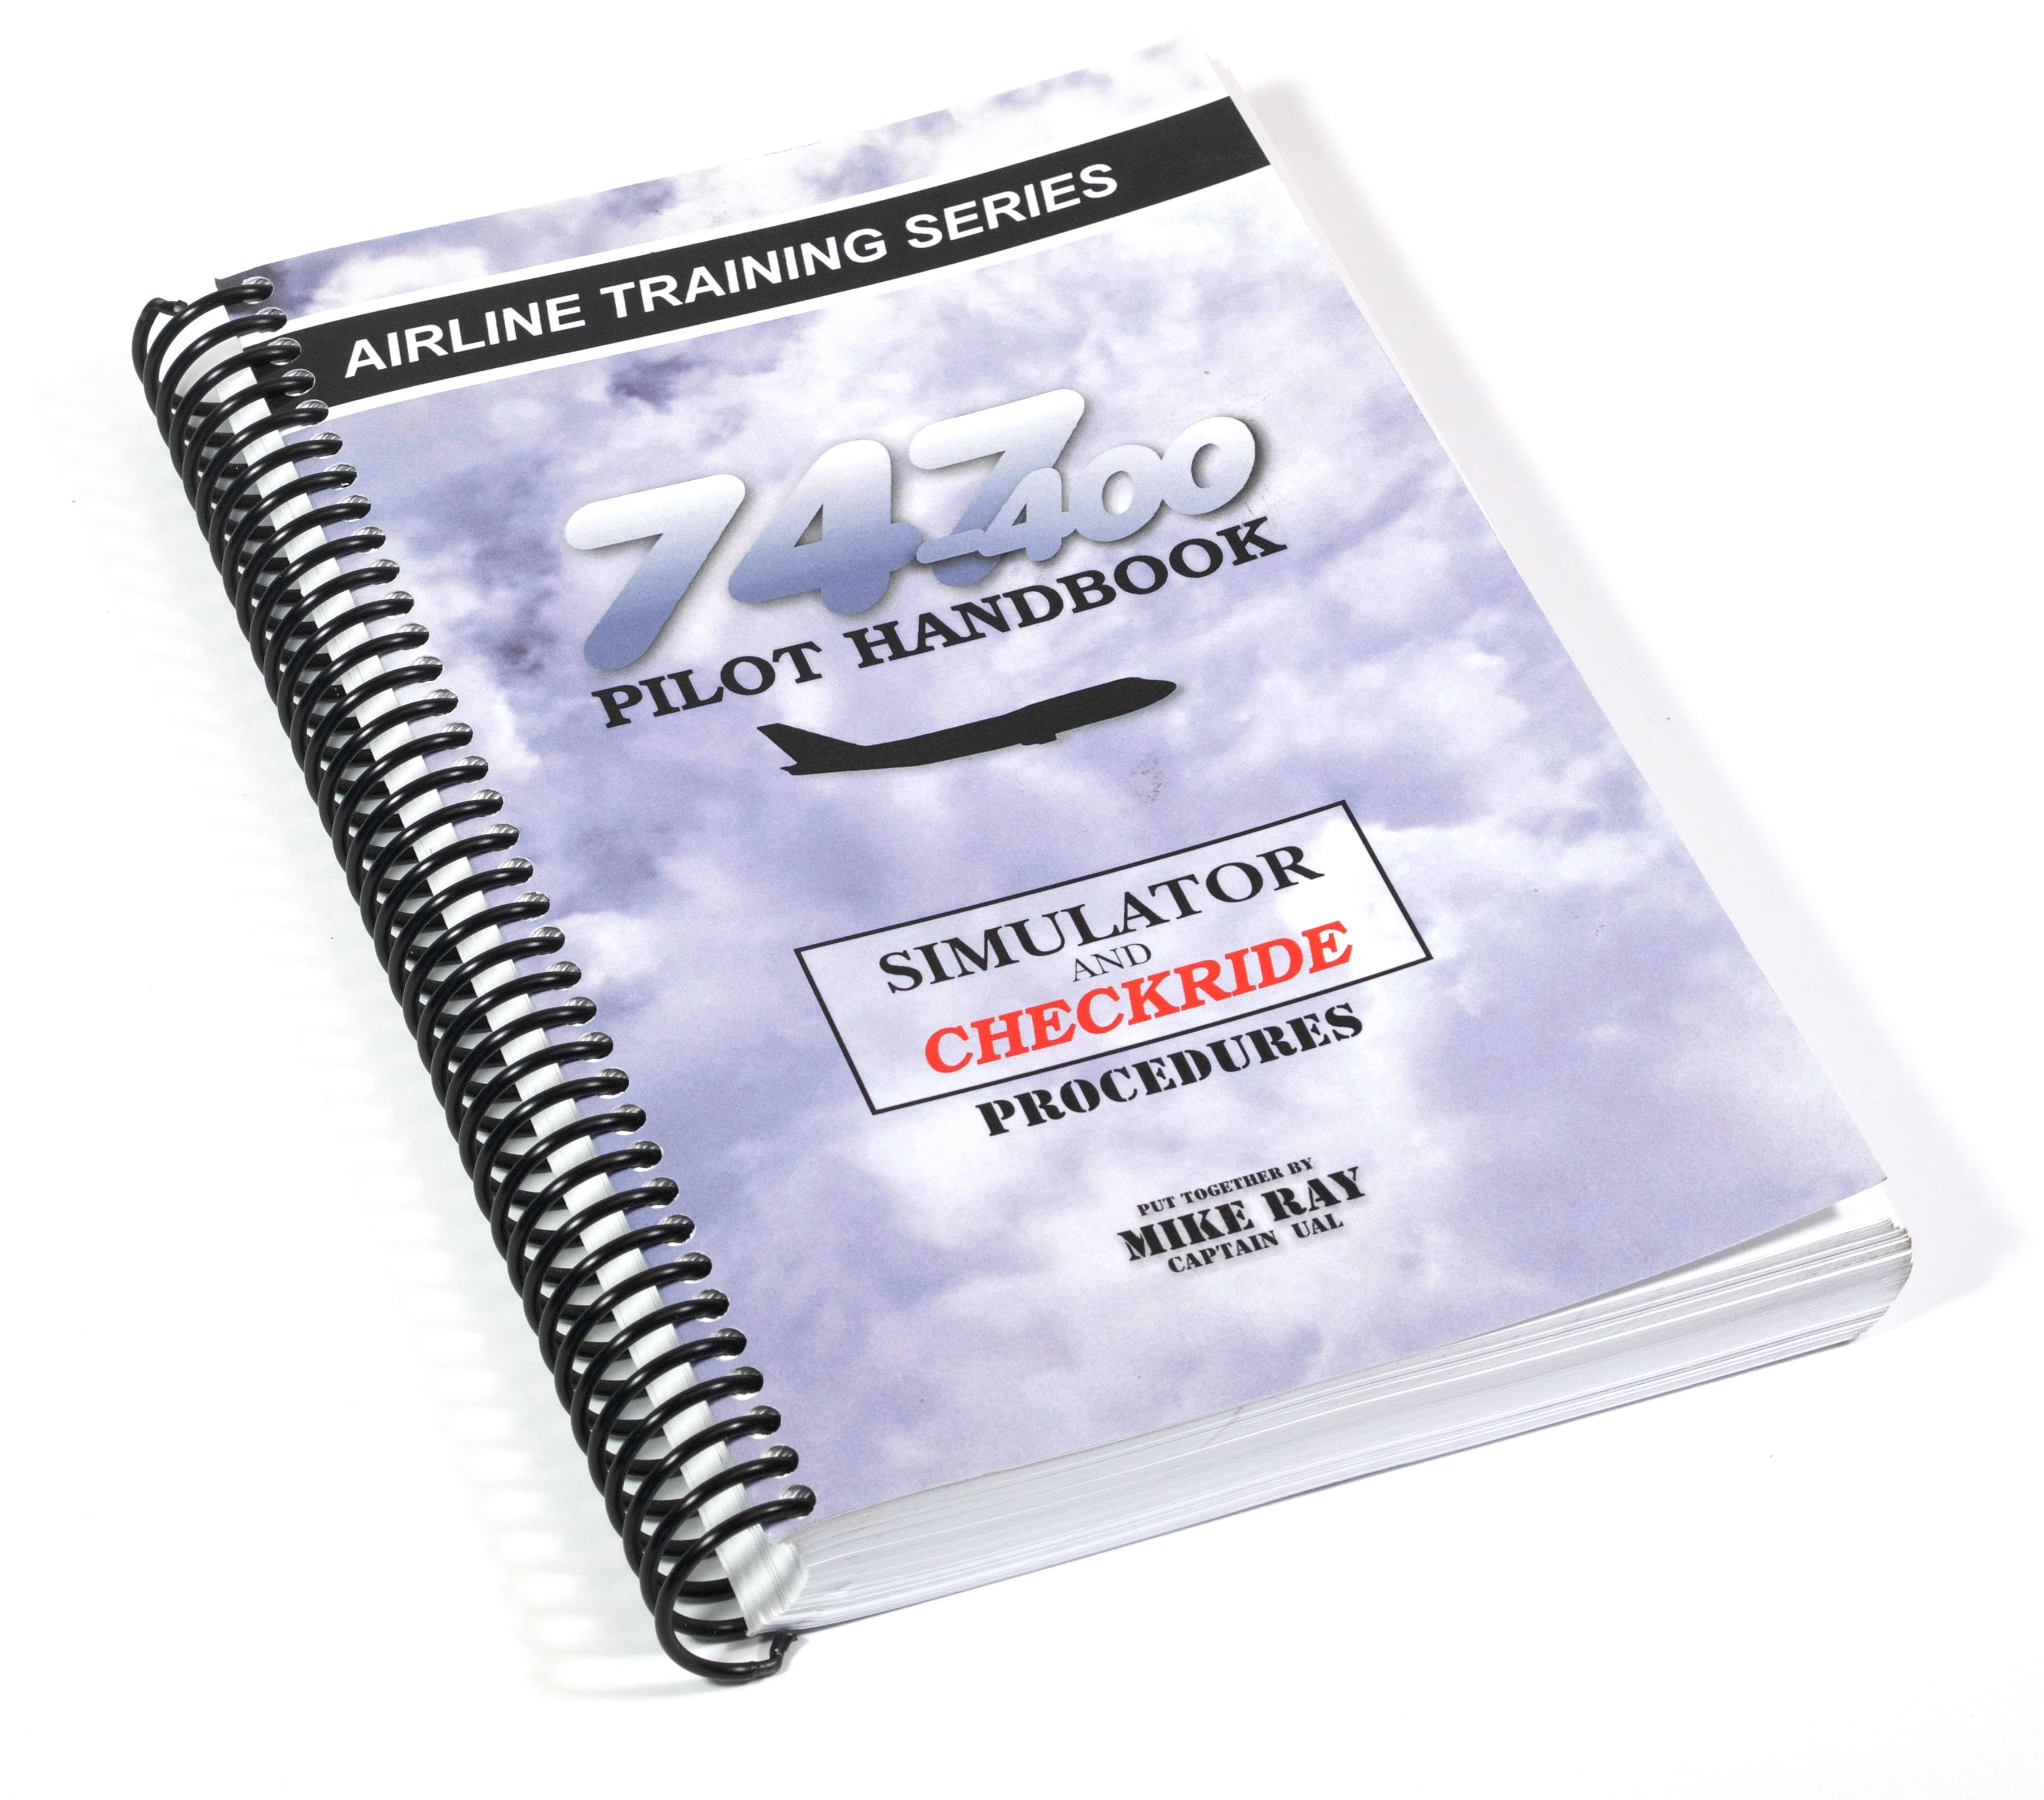 boeing 747 checkride guide rh afeonline com Boeing 797 boeing 747 technical guide